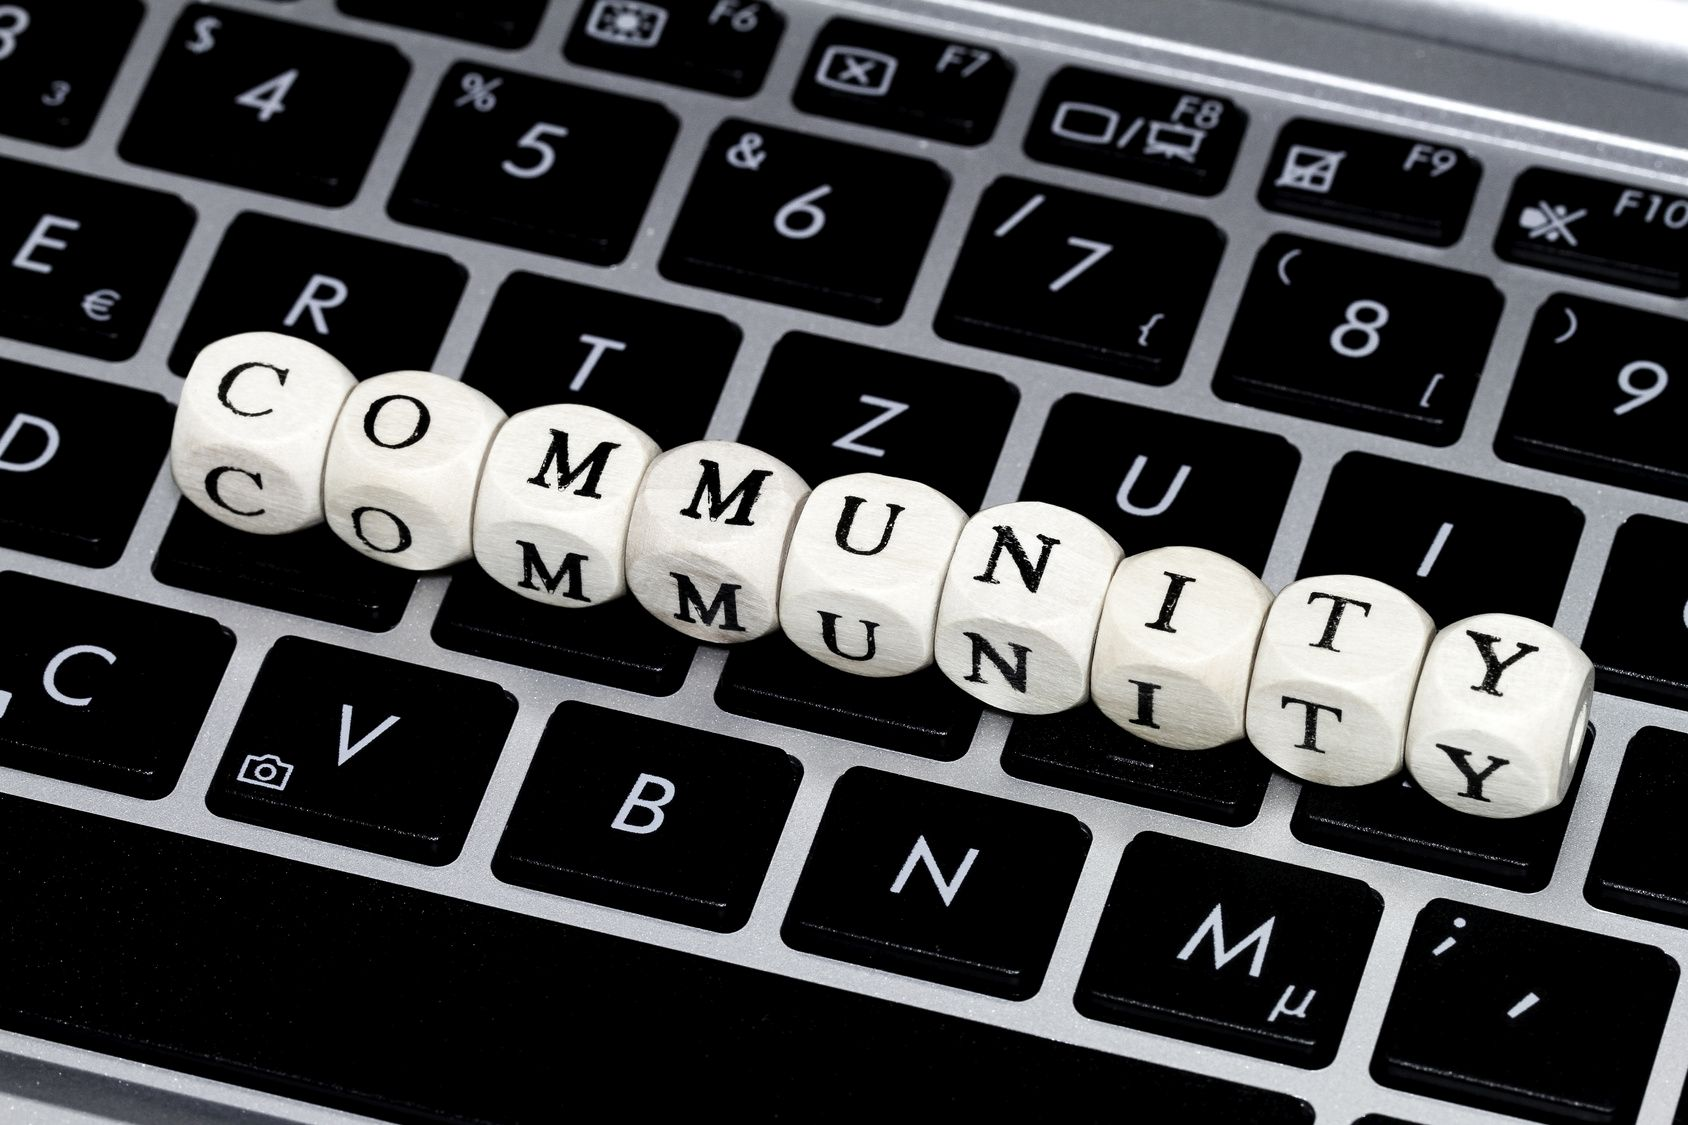 How to Build Your Business Community on LinkedIn